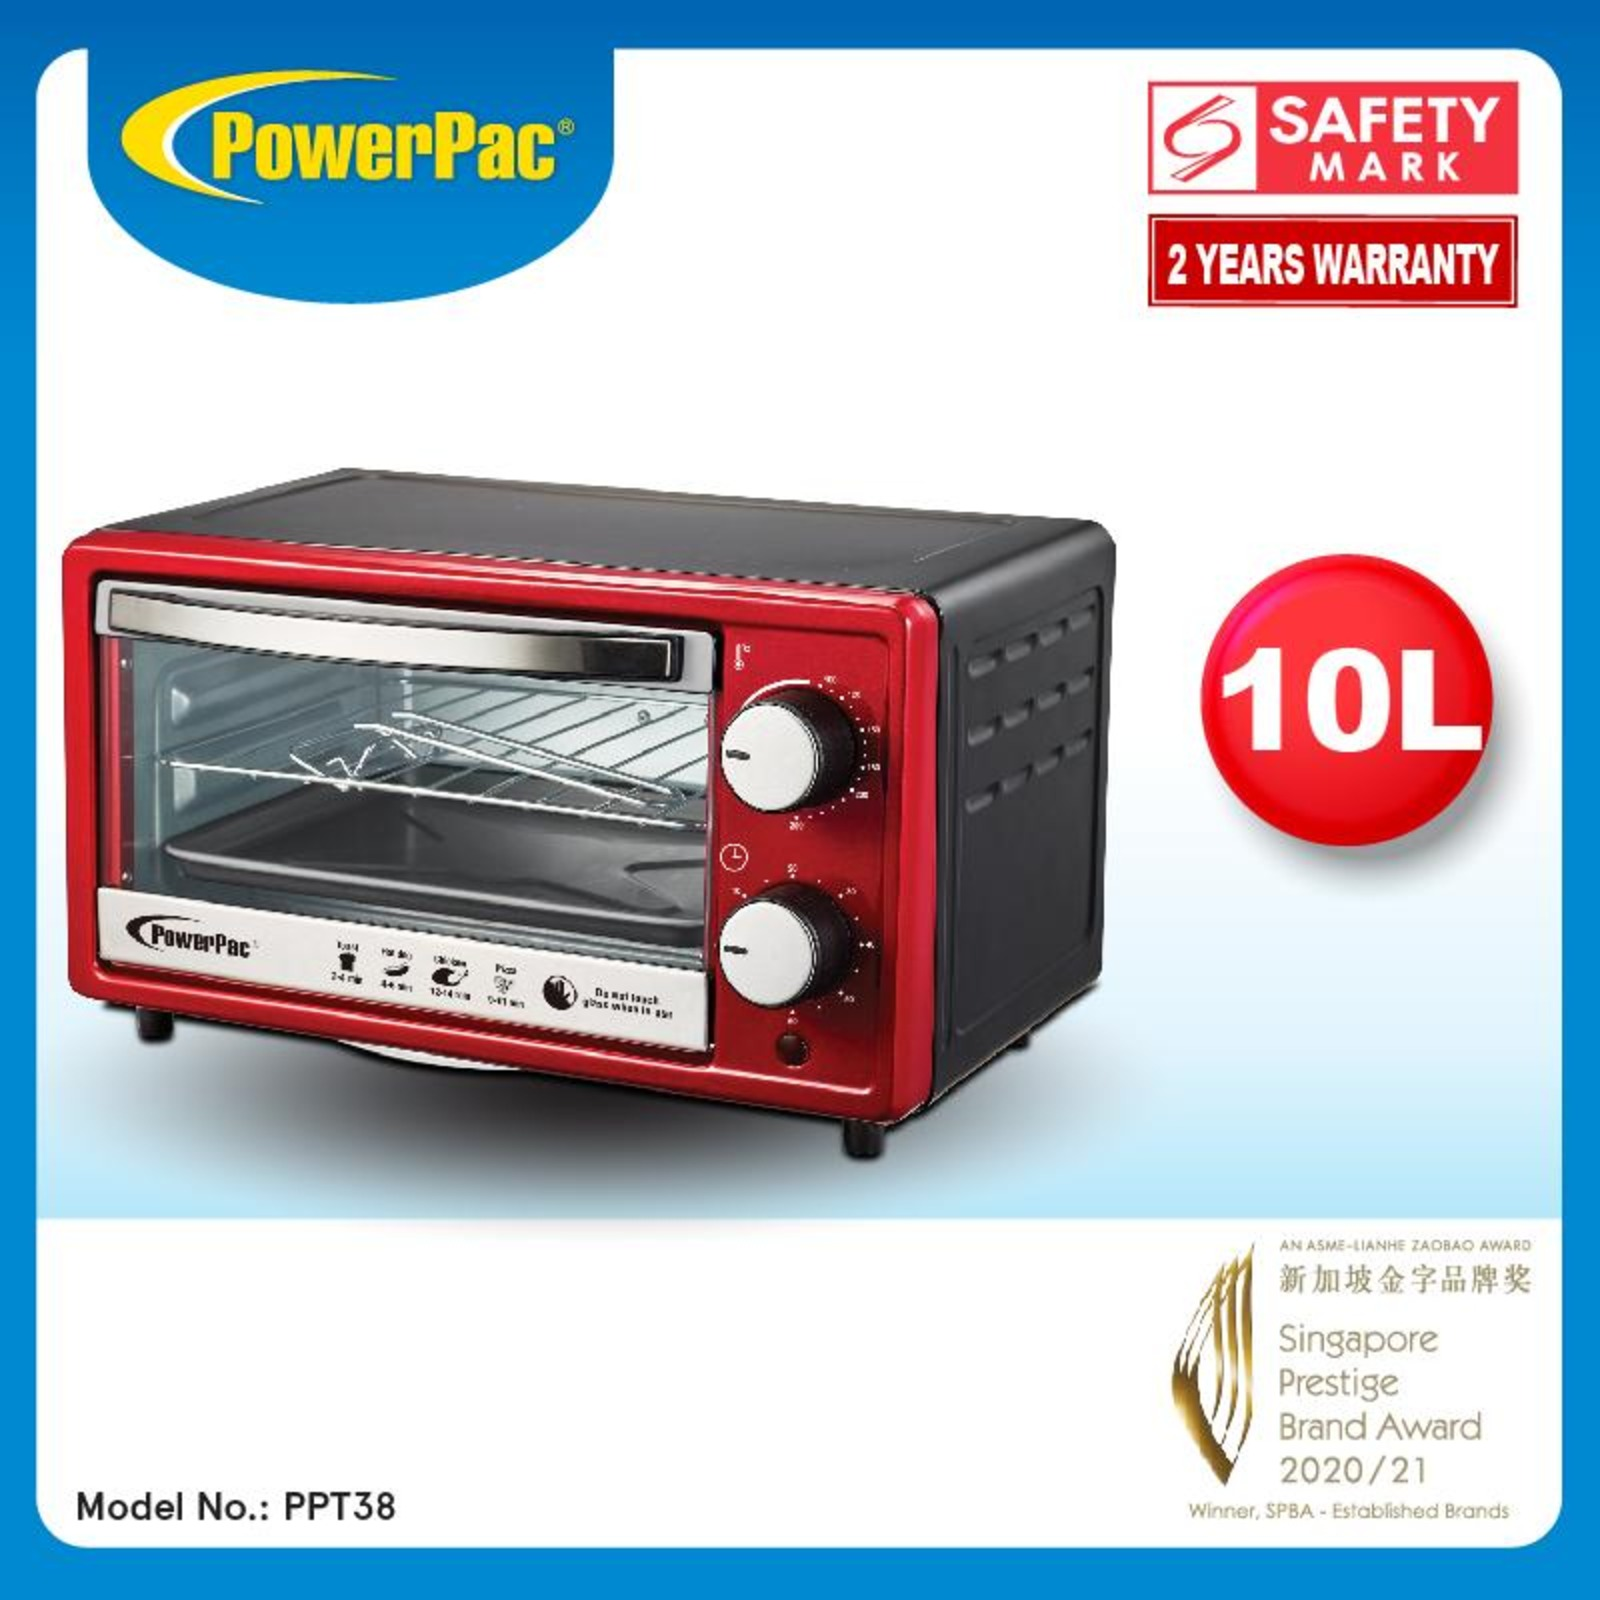 PowerPac (PPT38) 10L Electric Oven